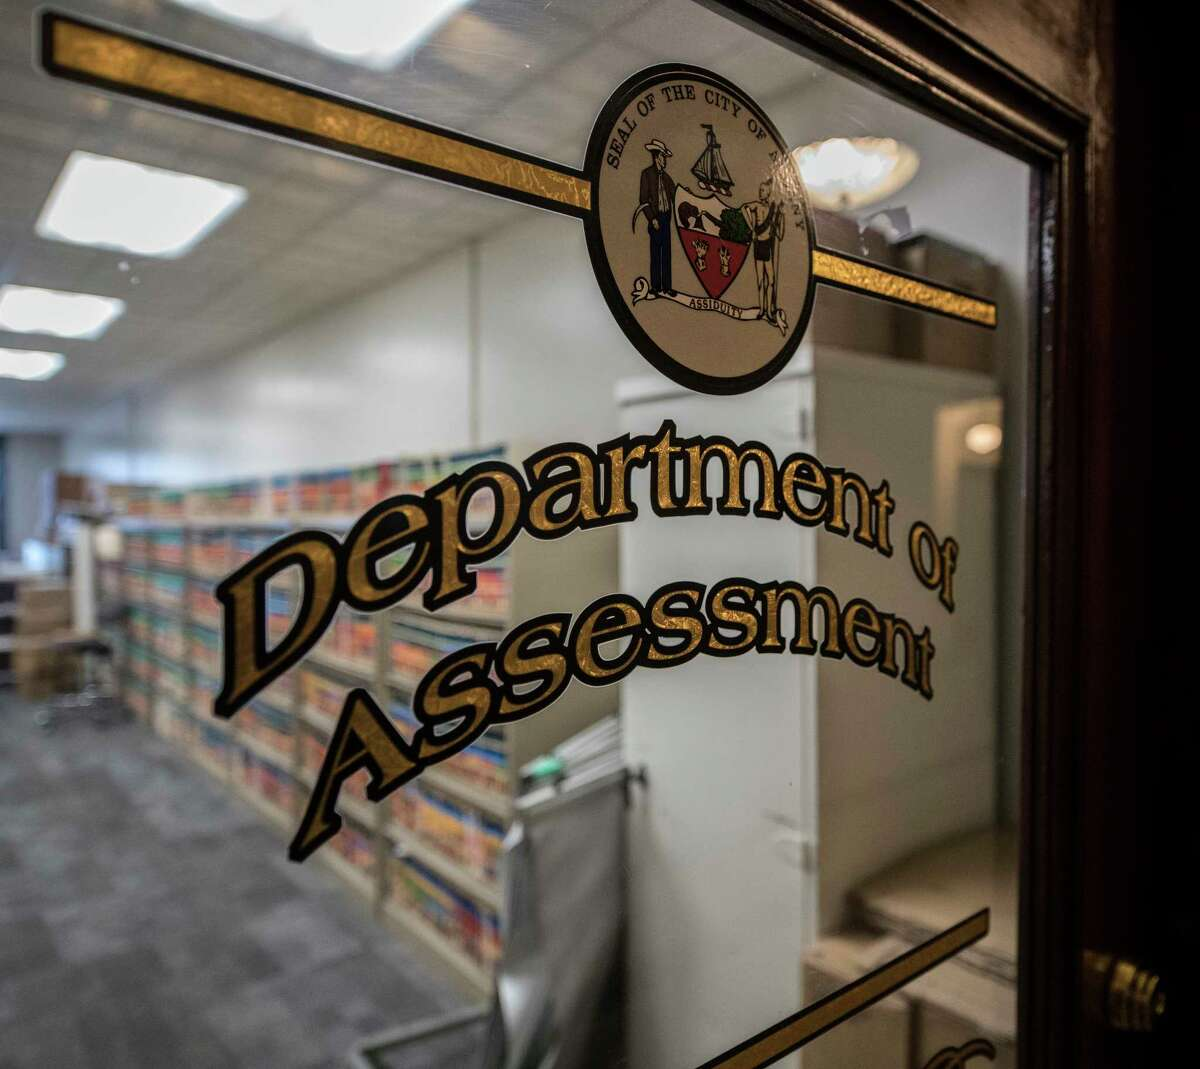 The logo on the door of the Department of Assessment in City Hall Thursday Dec 14, 2017 in Albany, N.Y. (Skip Dickstein/ Times Union)